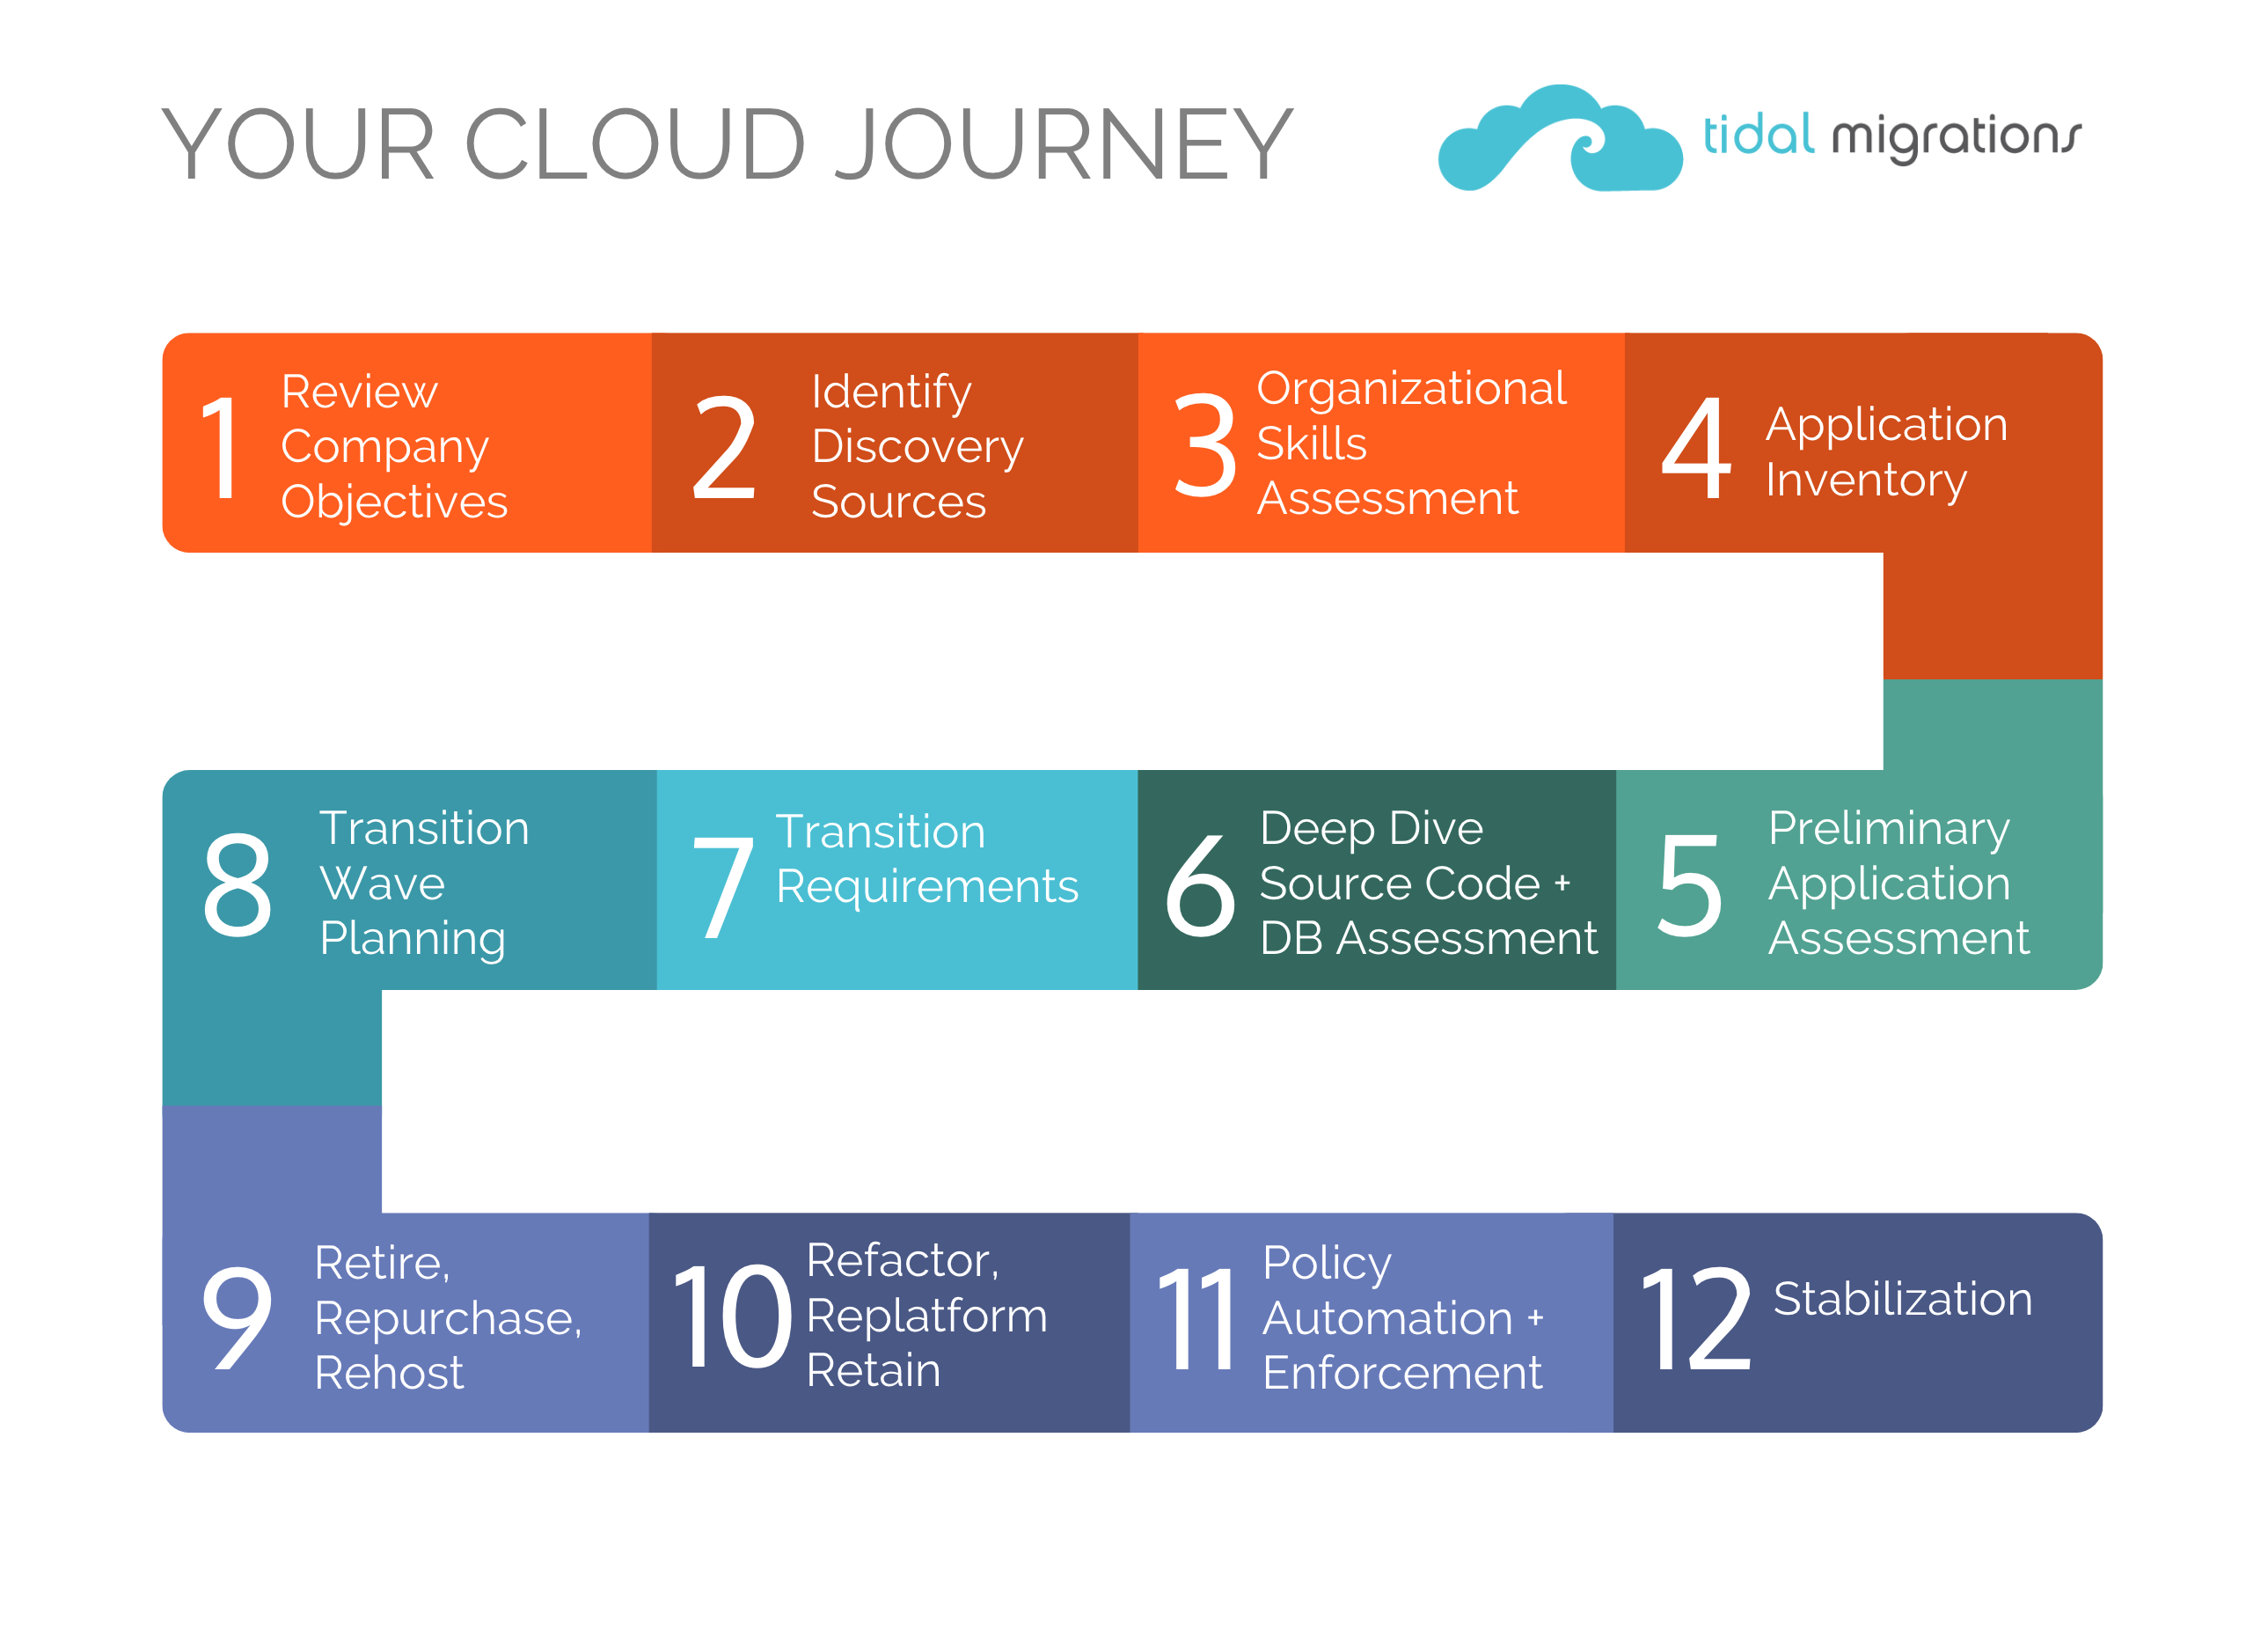 Tidal Migrations Journey To Cloud